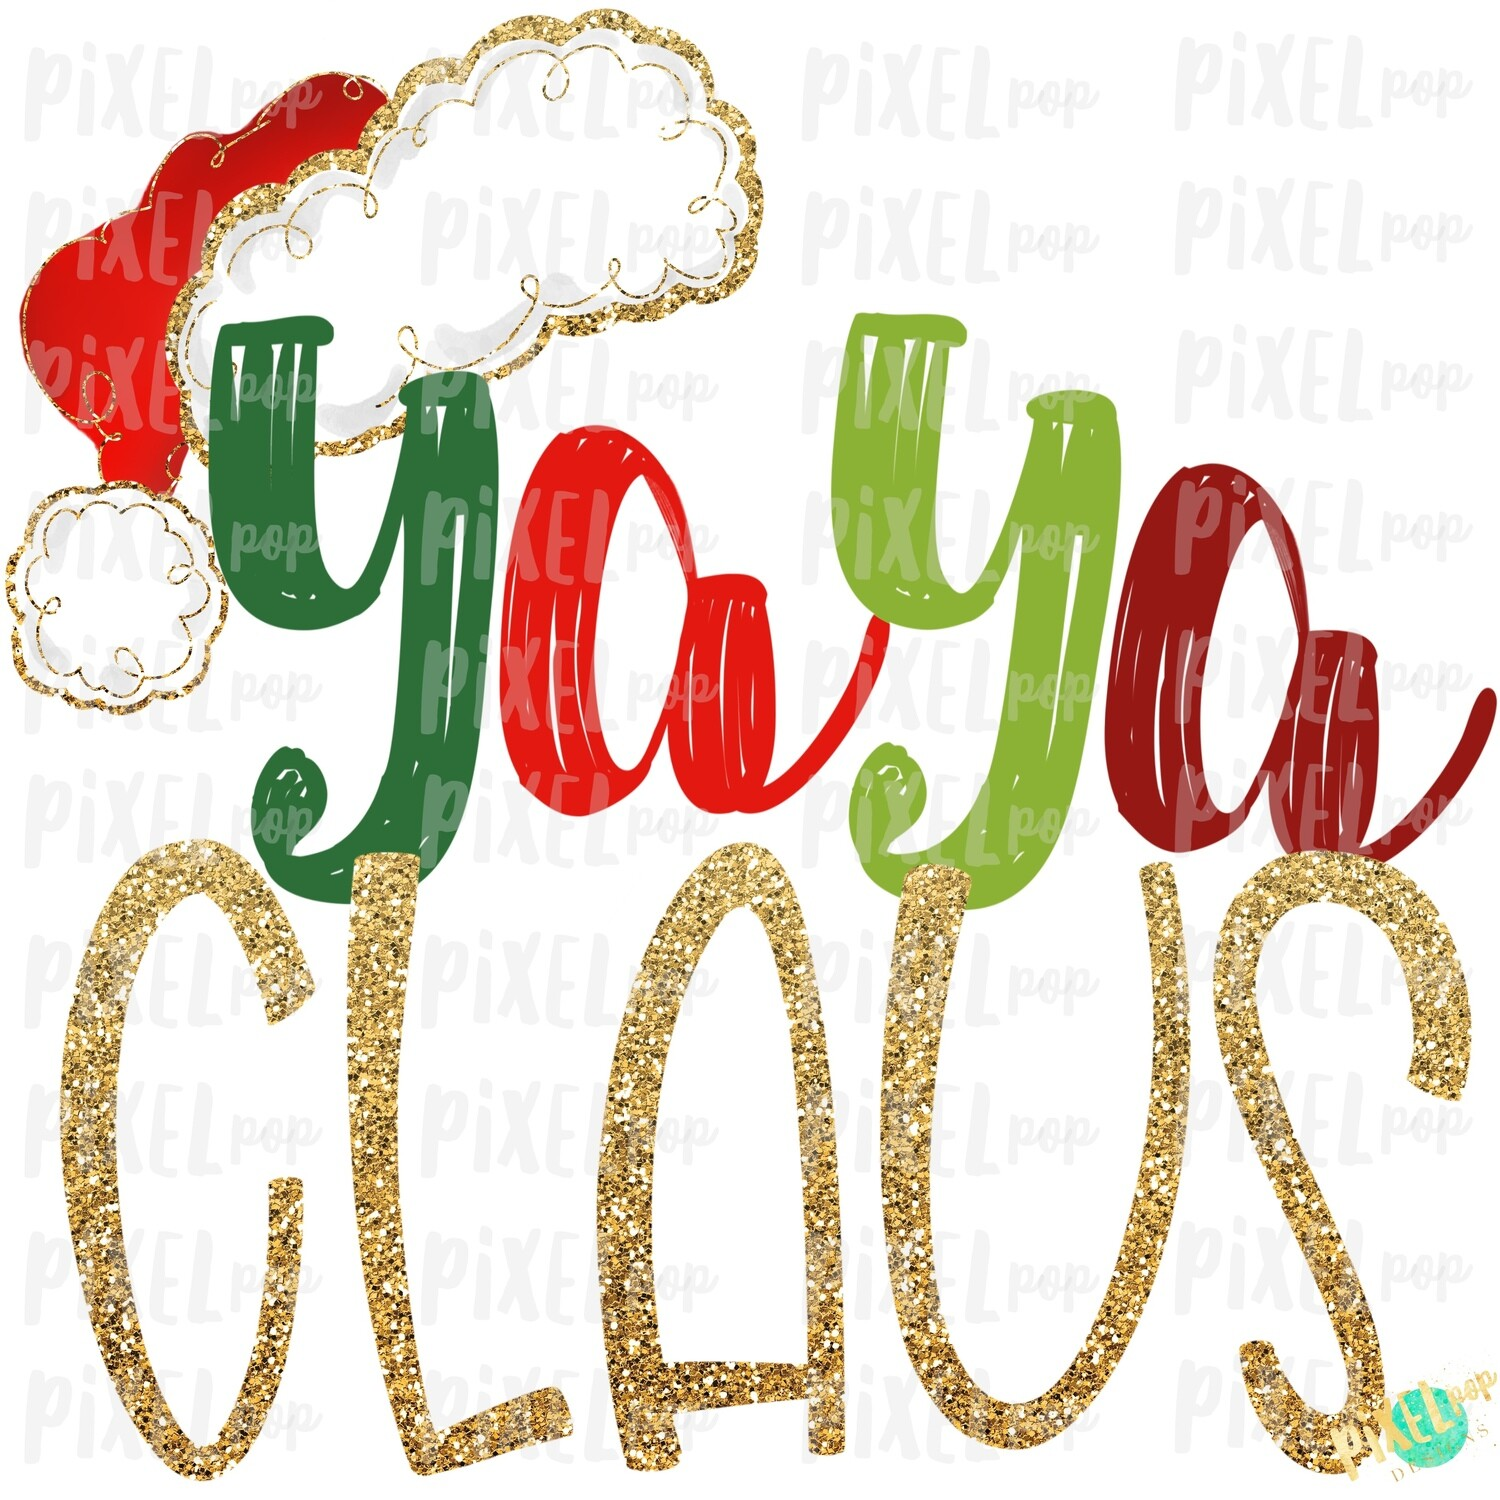 Yaya Claus Santa Hat Digital Watercolor Sublimation PNG Art | Drawn Design | Sublimation PNG | Digital Download | Printable Artwork | Art